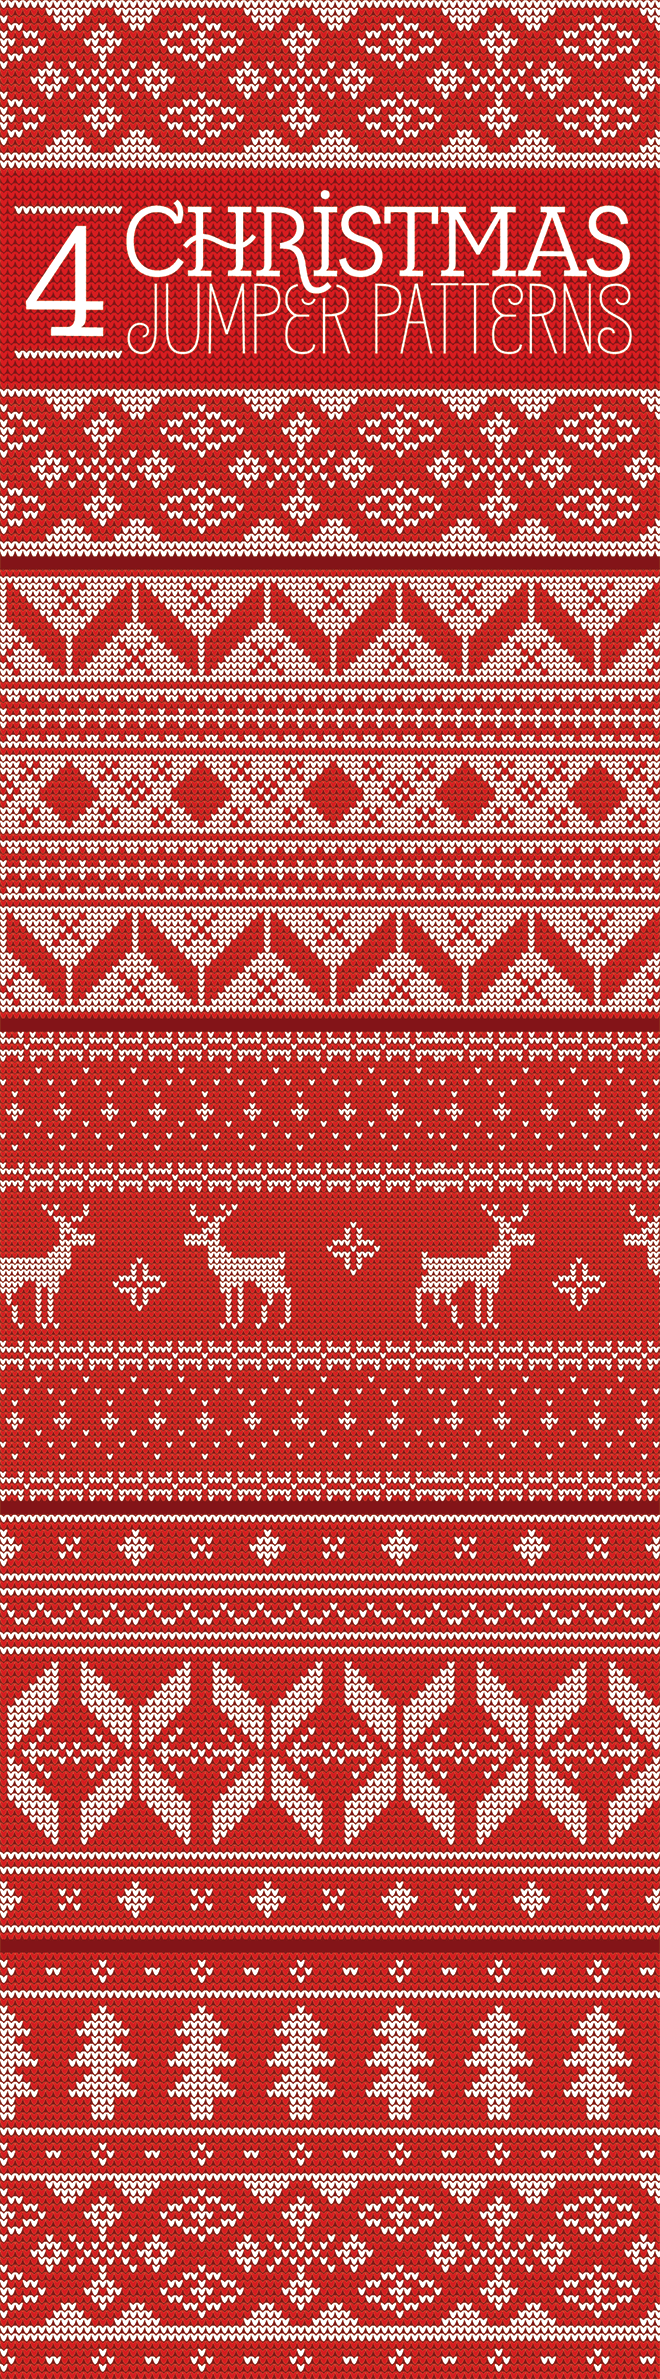 Crochet Jumper Patterns Uk : Free Seamless Knitted Christmas Jumper Patterns